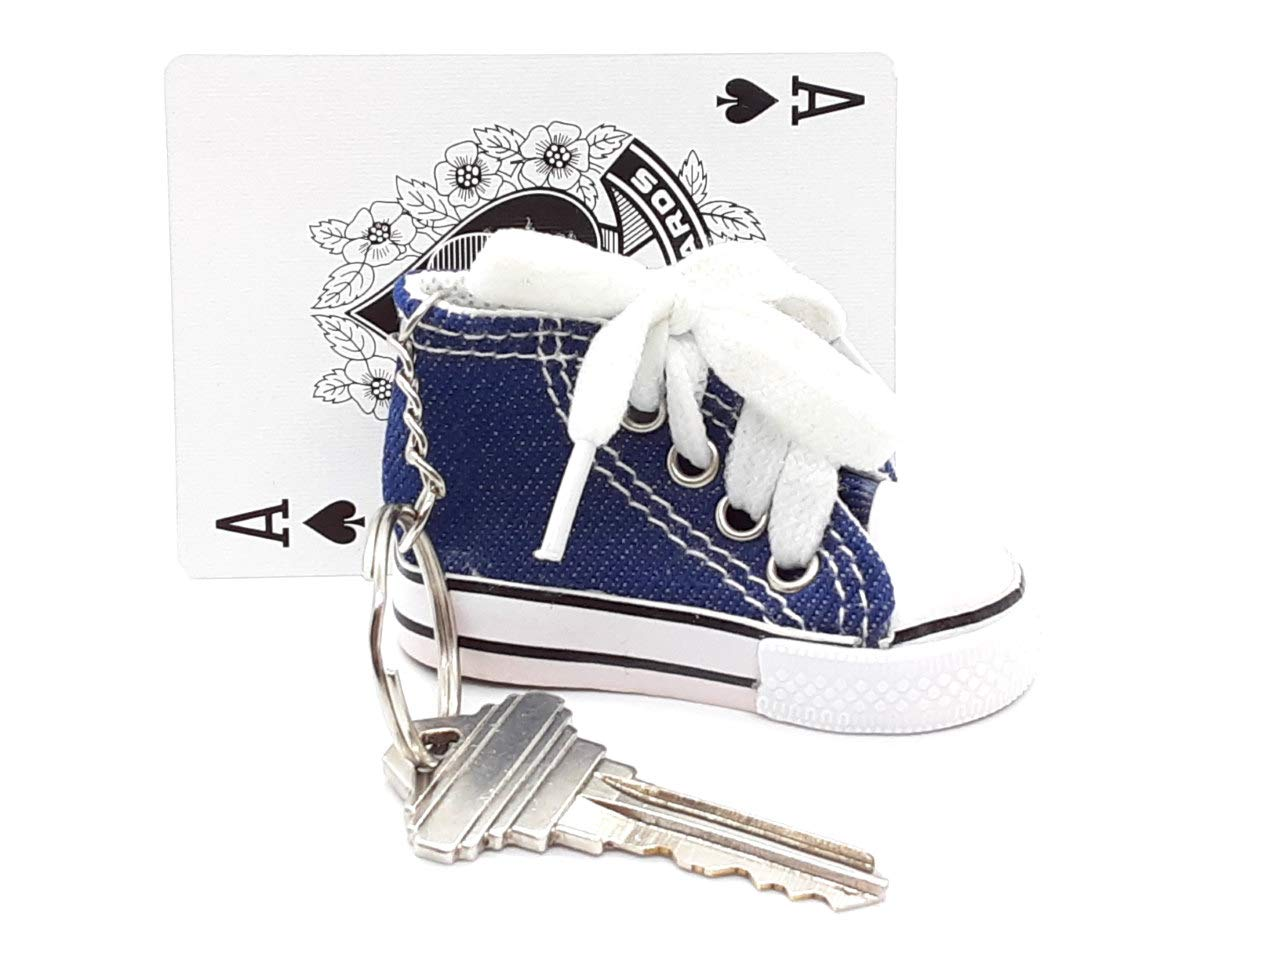 Cute Miniature Keyring Shoe for Party Favors Mini Key Chain Sneaker in Blue Denim Tiny Canvas High Top Backpack Charm for Boys and Girls Novelty Tennis Shoe Keychain for Kids Pack of 13